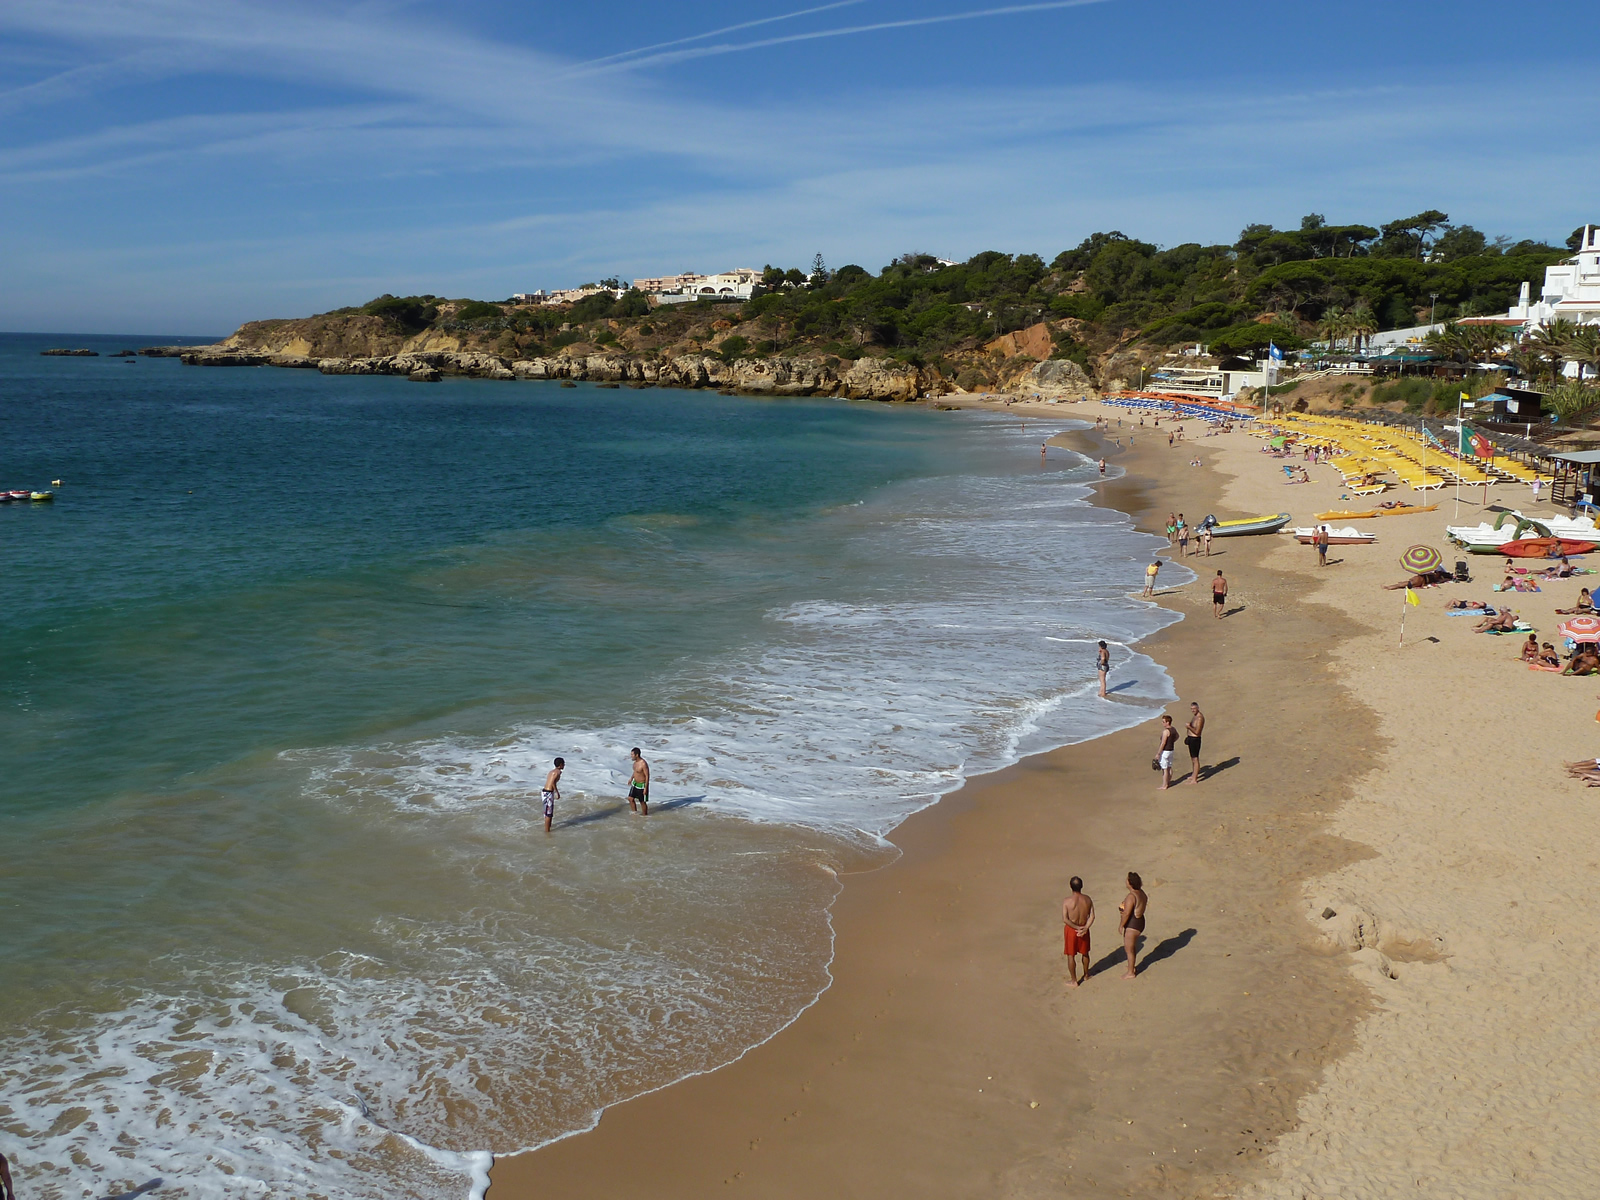 The beautiful, colourful beach of Praia da Oura is just 15 minutes walk away.